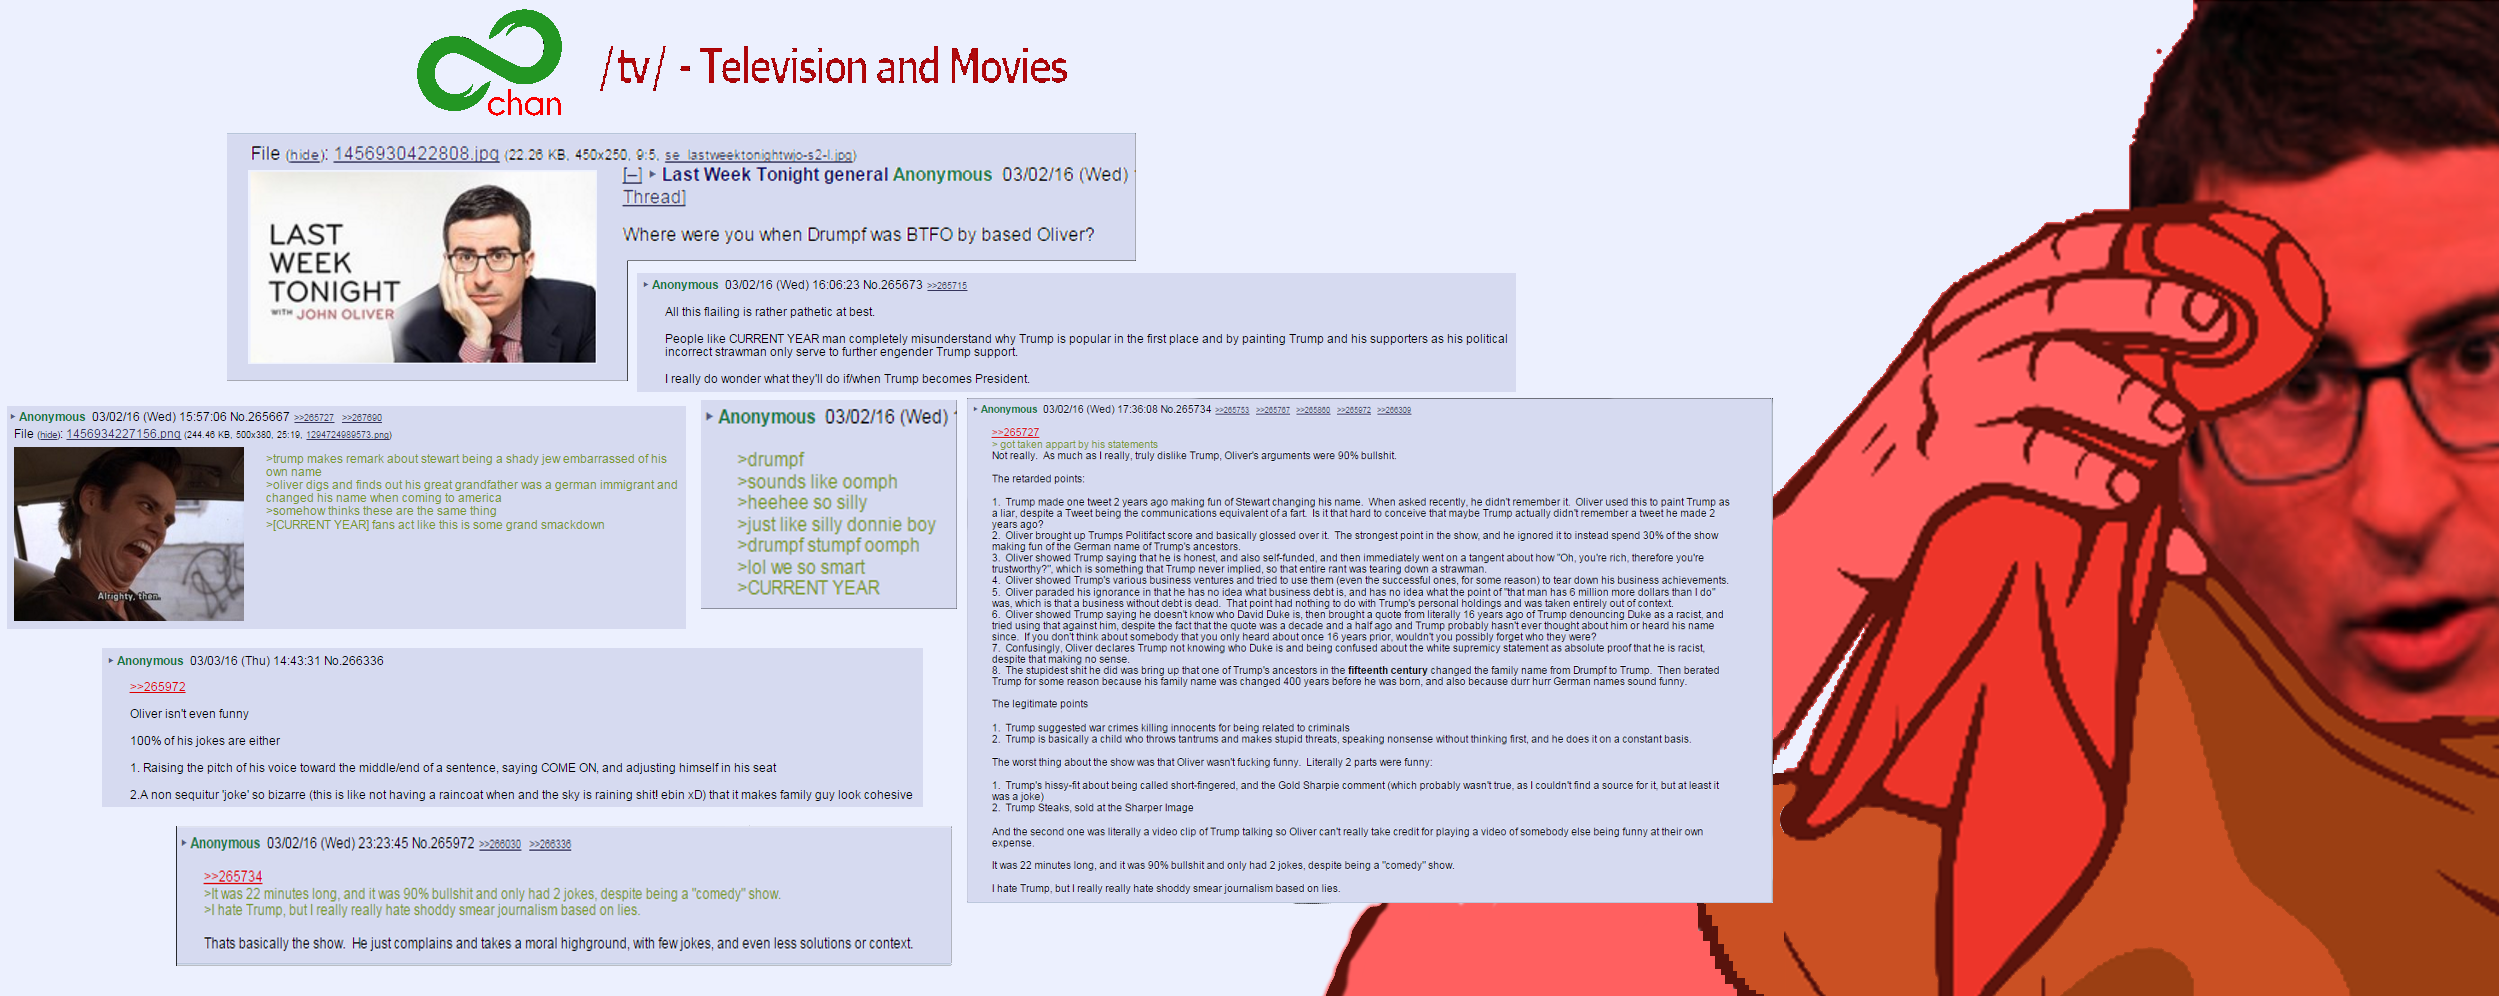 8chan Picture: 8chan /tv/ Thread On LWT Episode